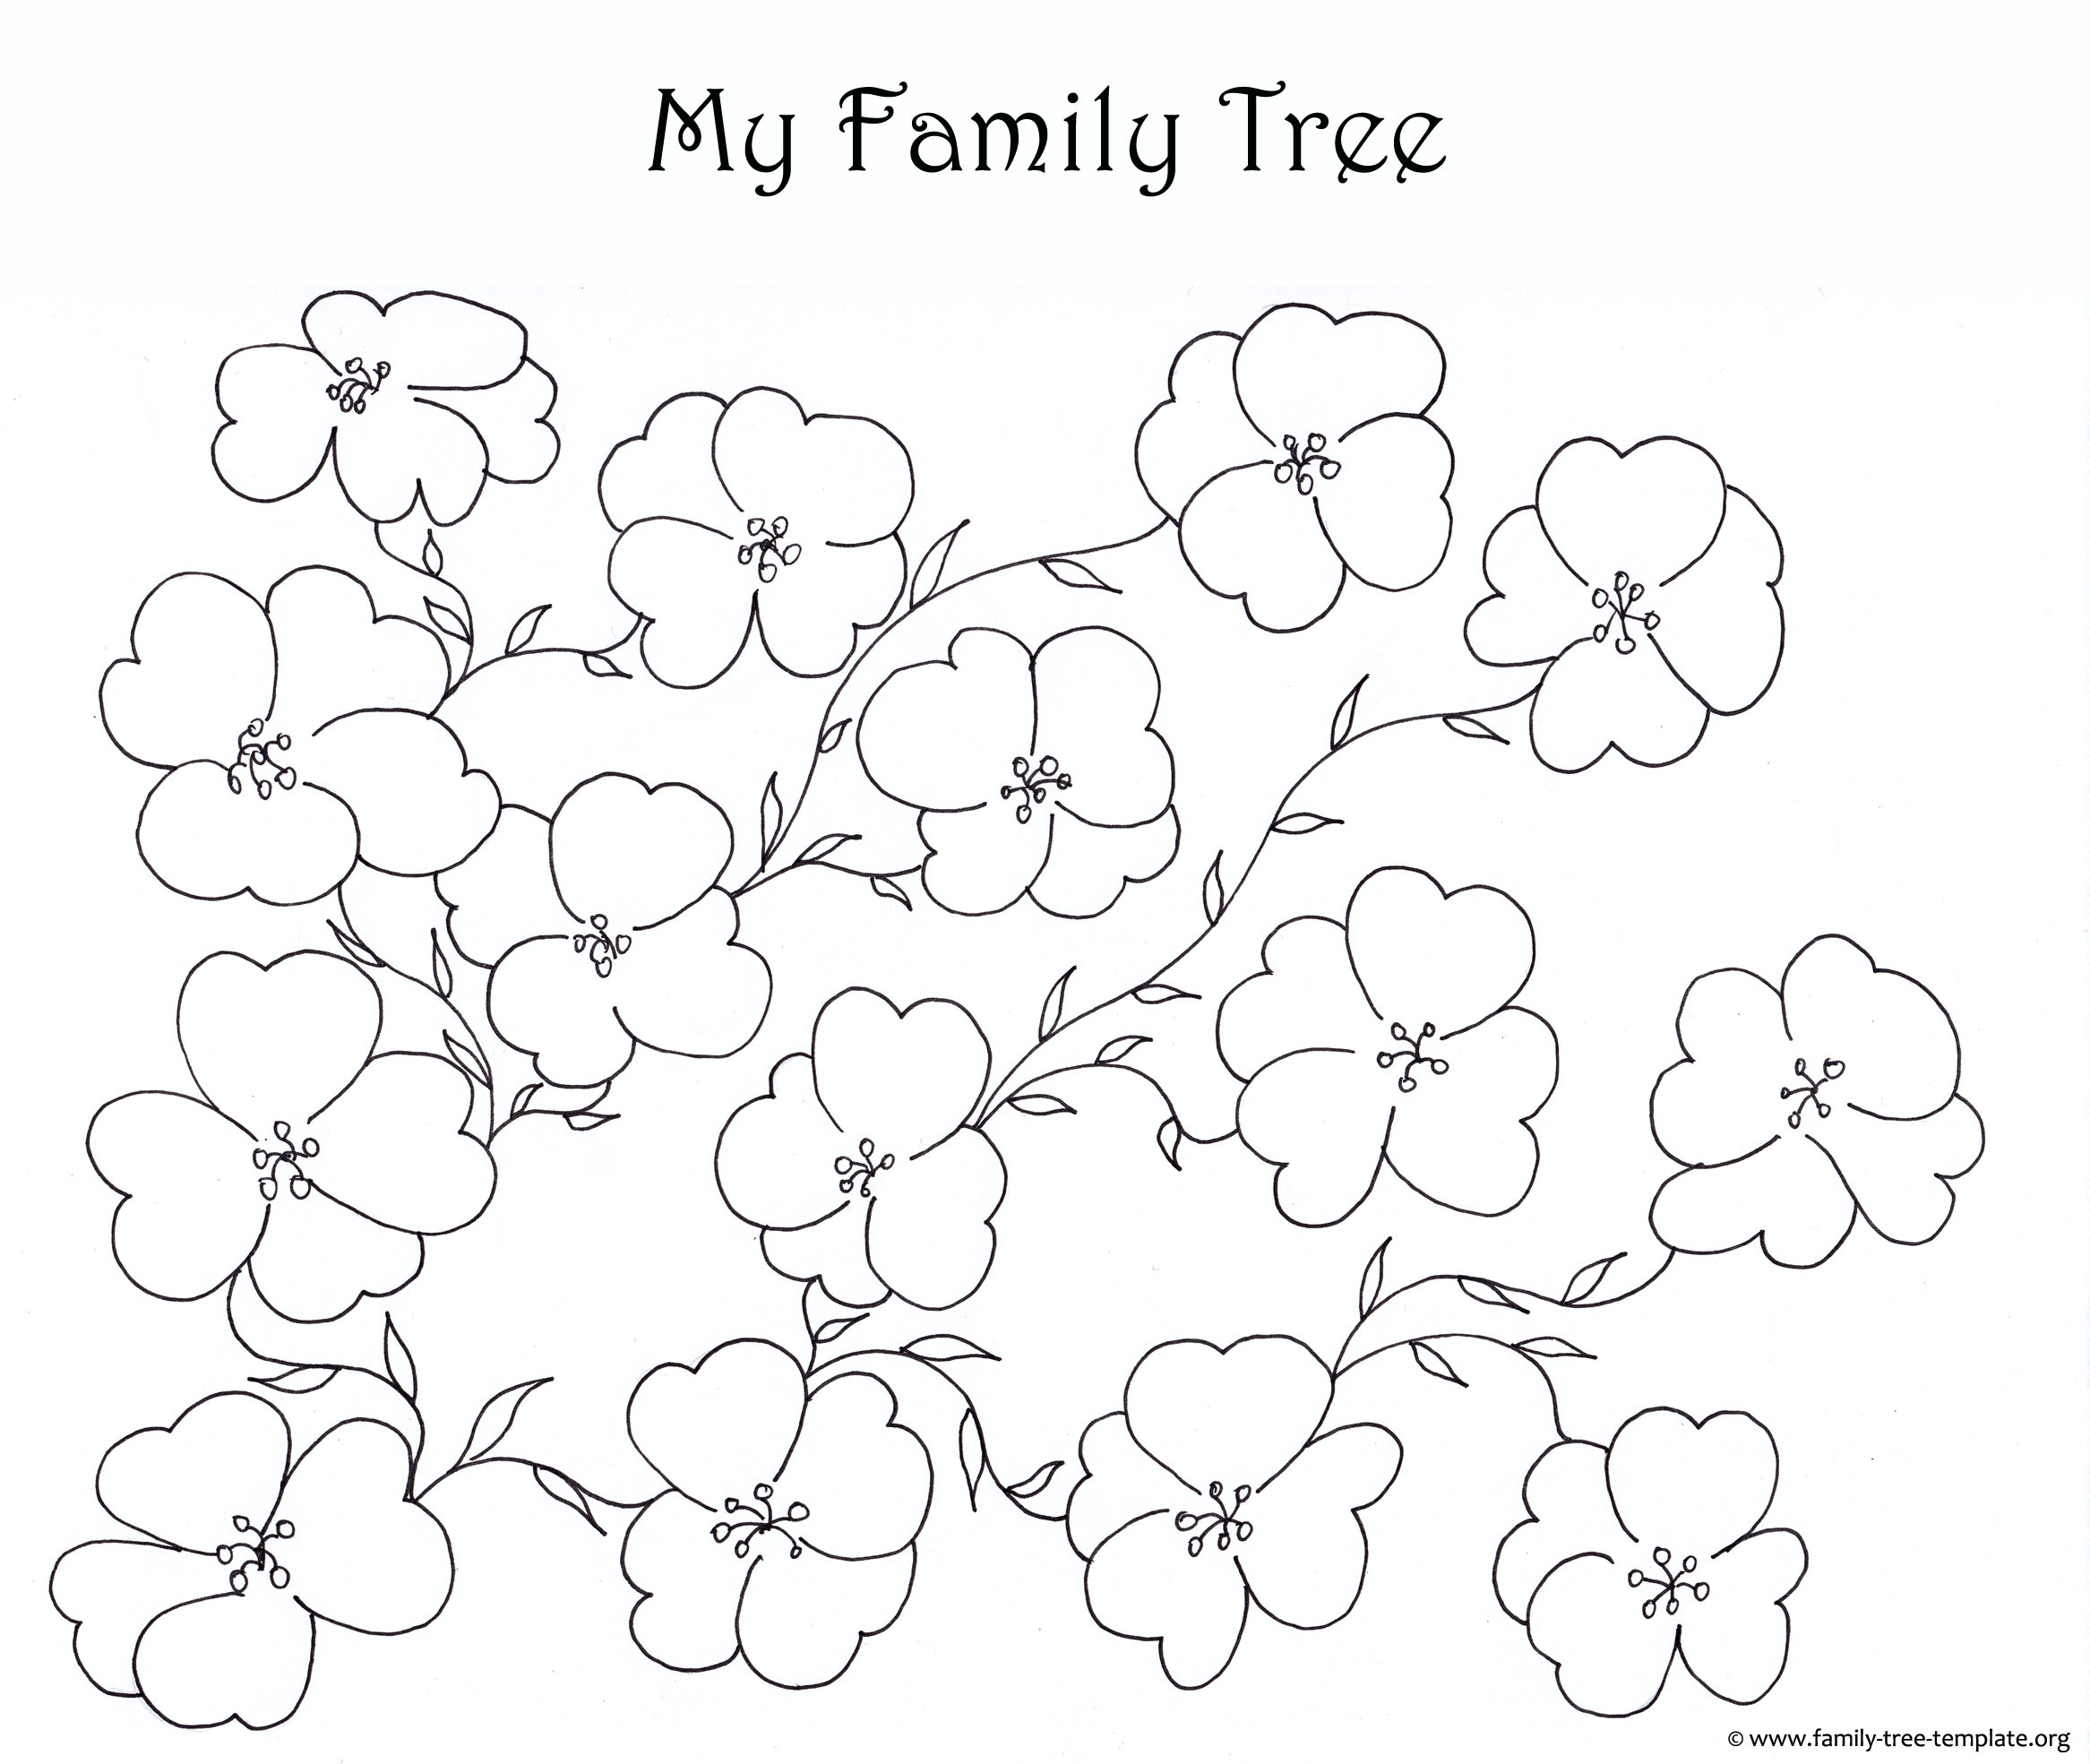 Blank family tree for kids to color: Flower theme.